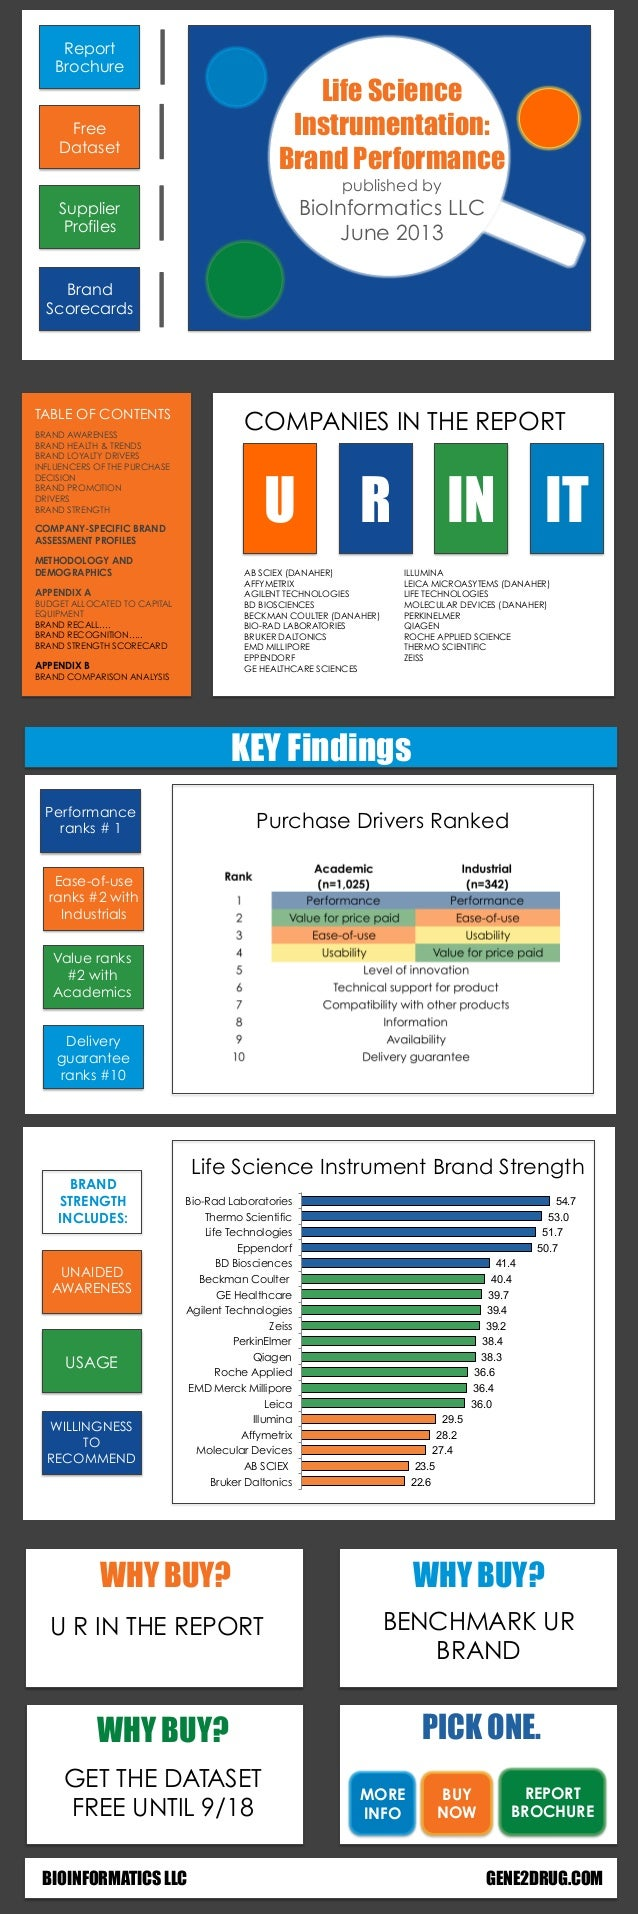 UNAIDED AWARENESS USAGE WILLINGNESS TO RECOMMEND Life Science Instrument Brand Strength BRAND STRENGTH INCLUDES: Free Data...